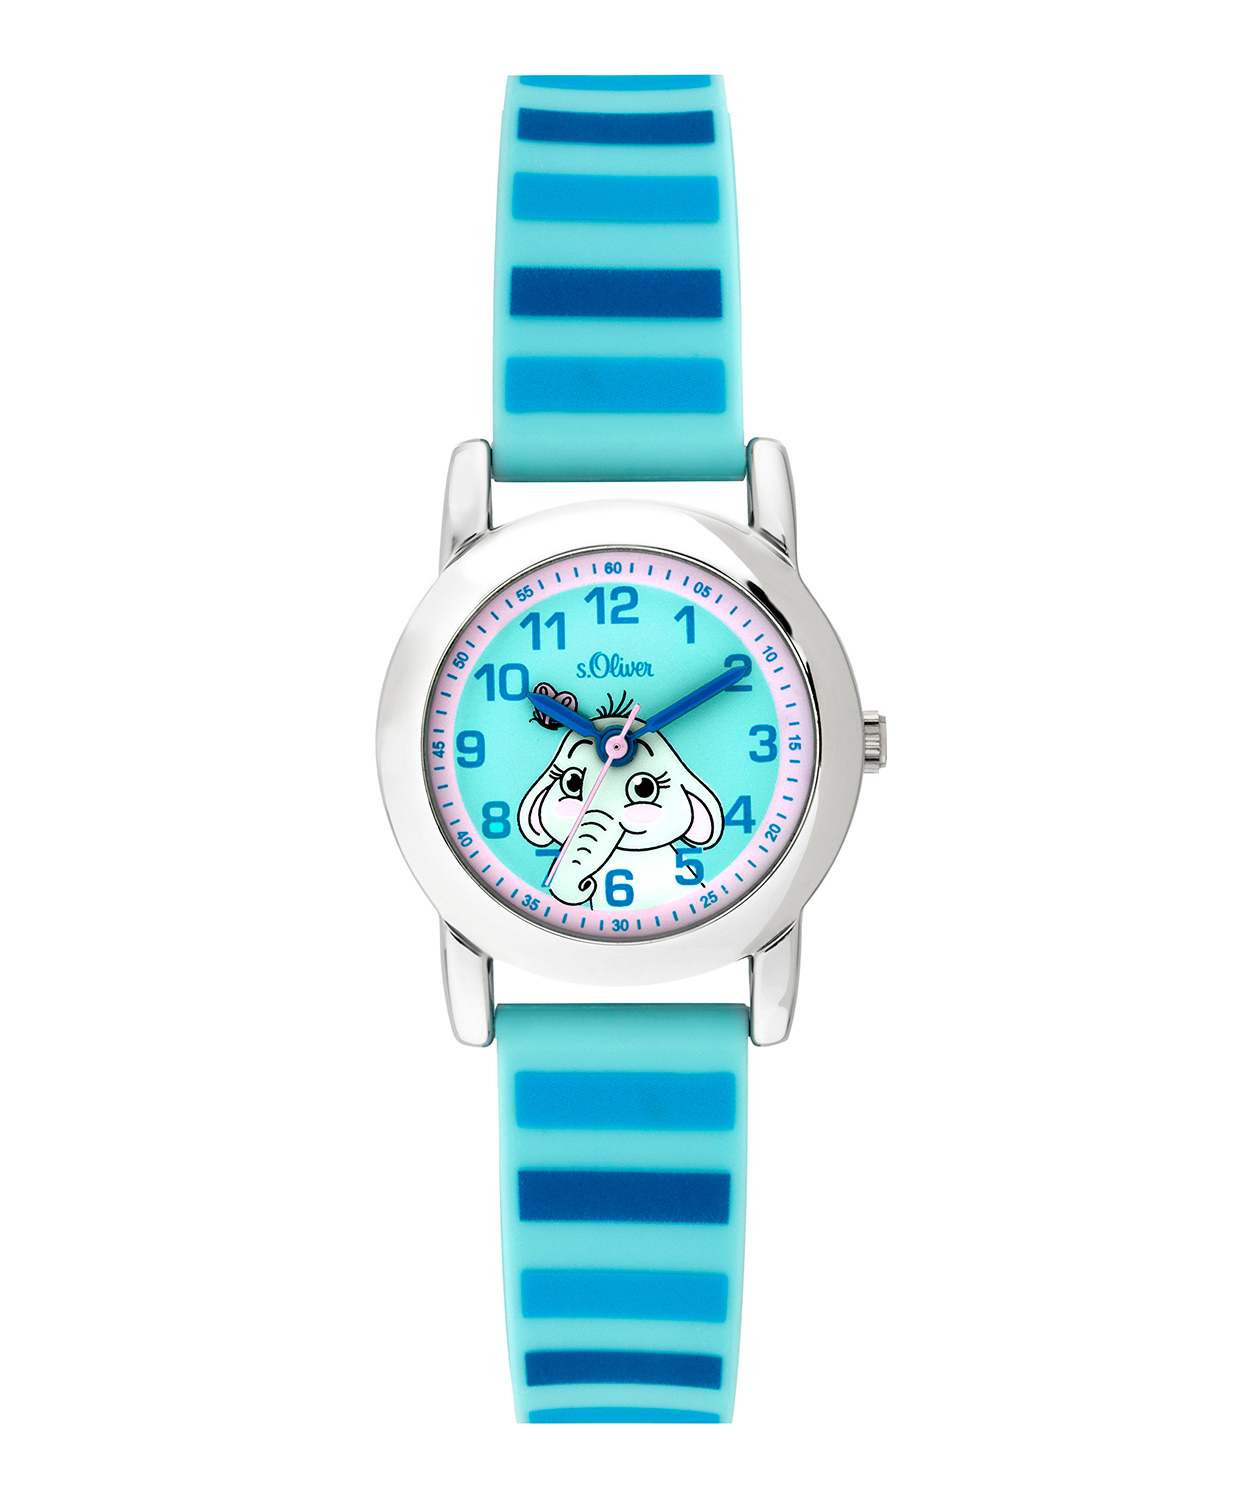 s.Oliver rubber watch strap light blue SO-3614-PQ